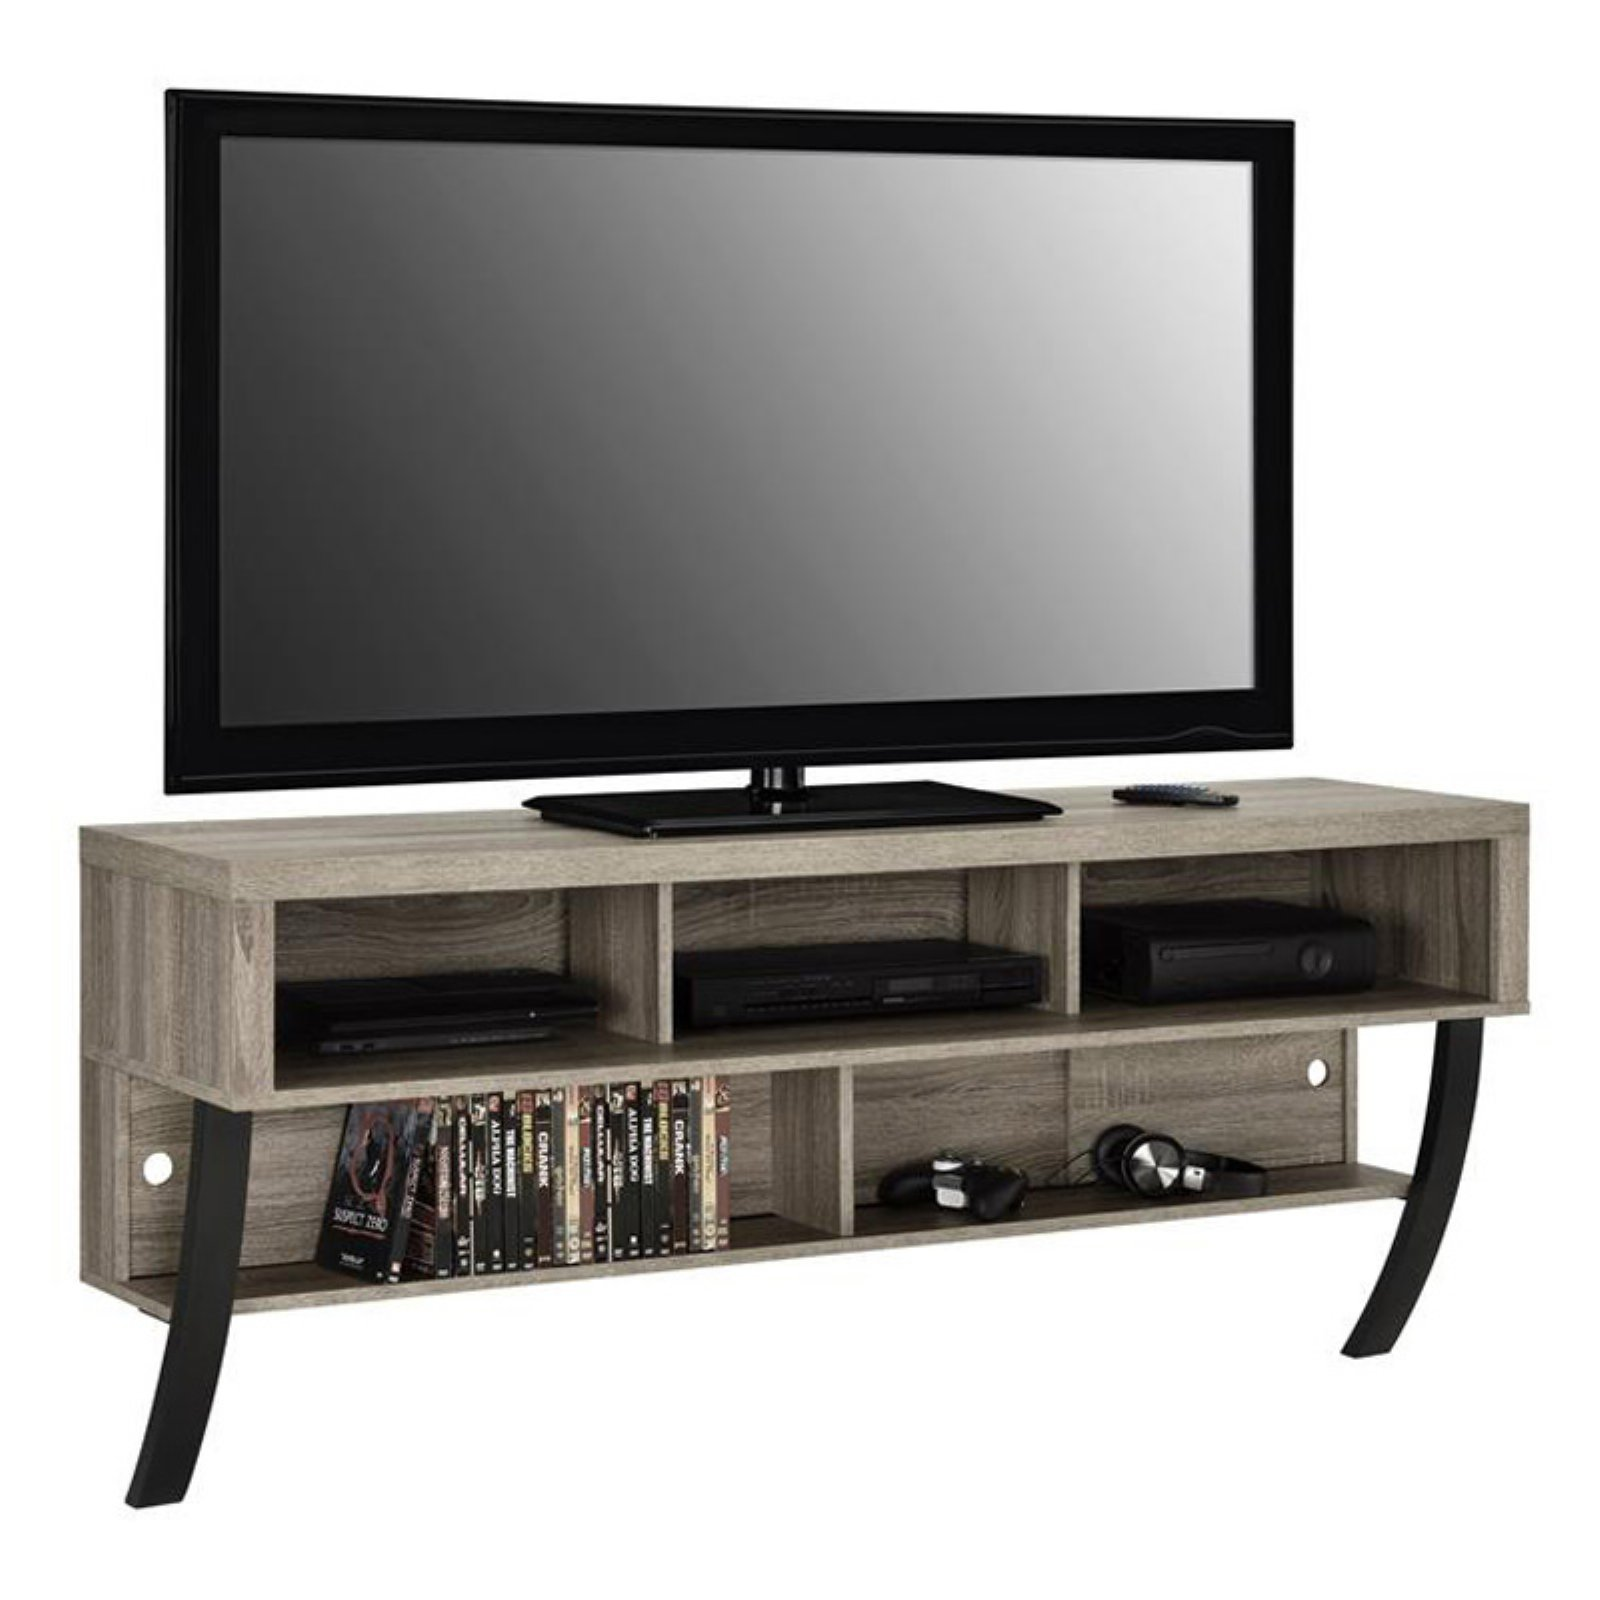 Ameriwood Home Asher Wall Mounted Tv Stand For Tvs Up To 65 Sonoma